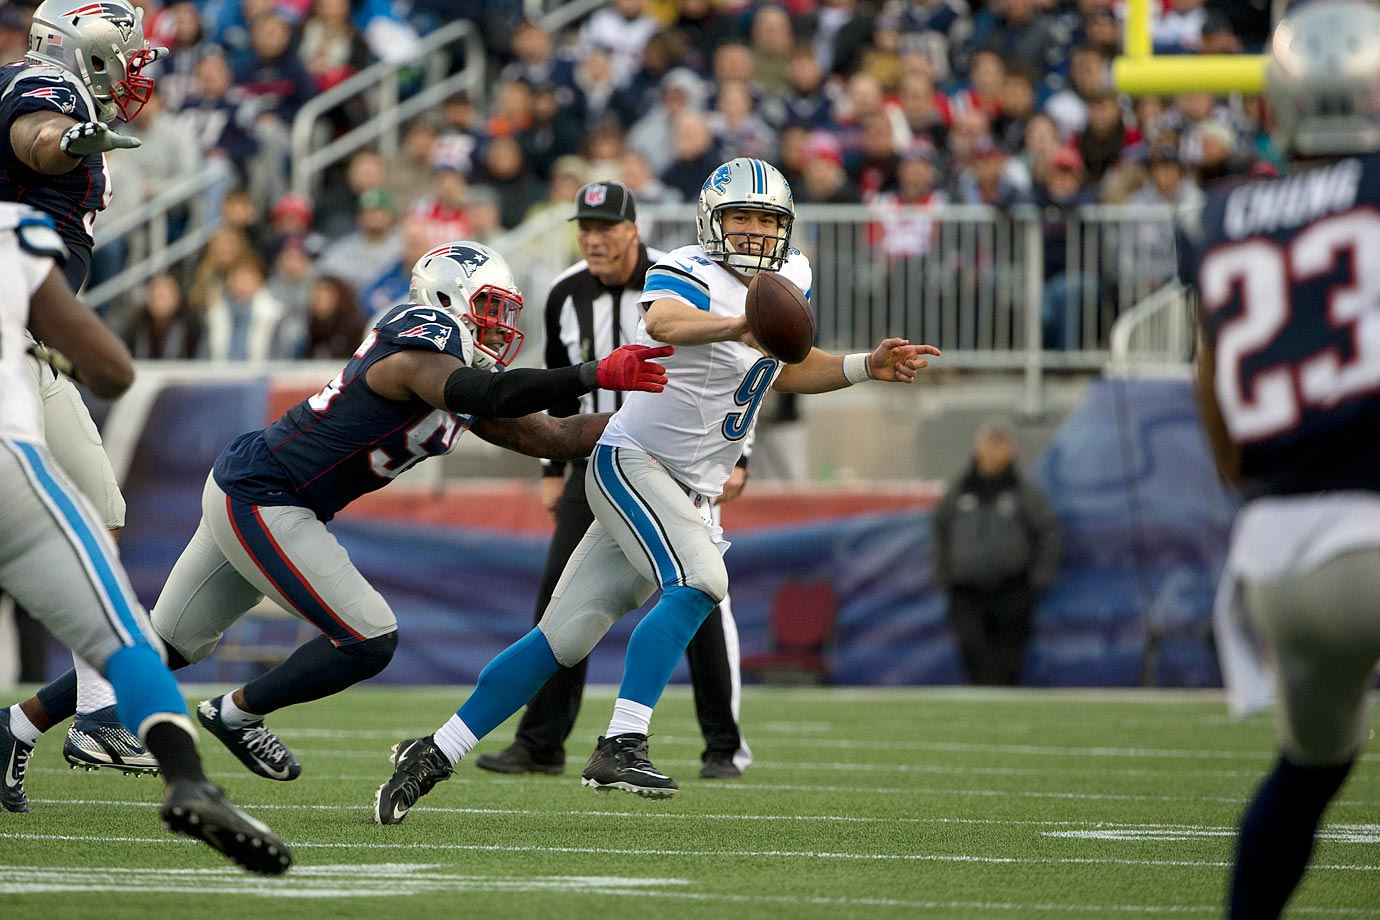 The Patriots' defense shined in their next win, a 34-9 shutdown of Detroit. Lions QB Matthew Stafford completed only 18 of his 46 passes and couldn't find the end zone. LaGarrette Blount ran for 78 yards and two scores after being picked up by New England three days earlier.